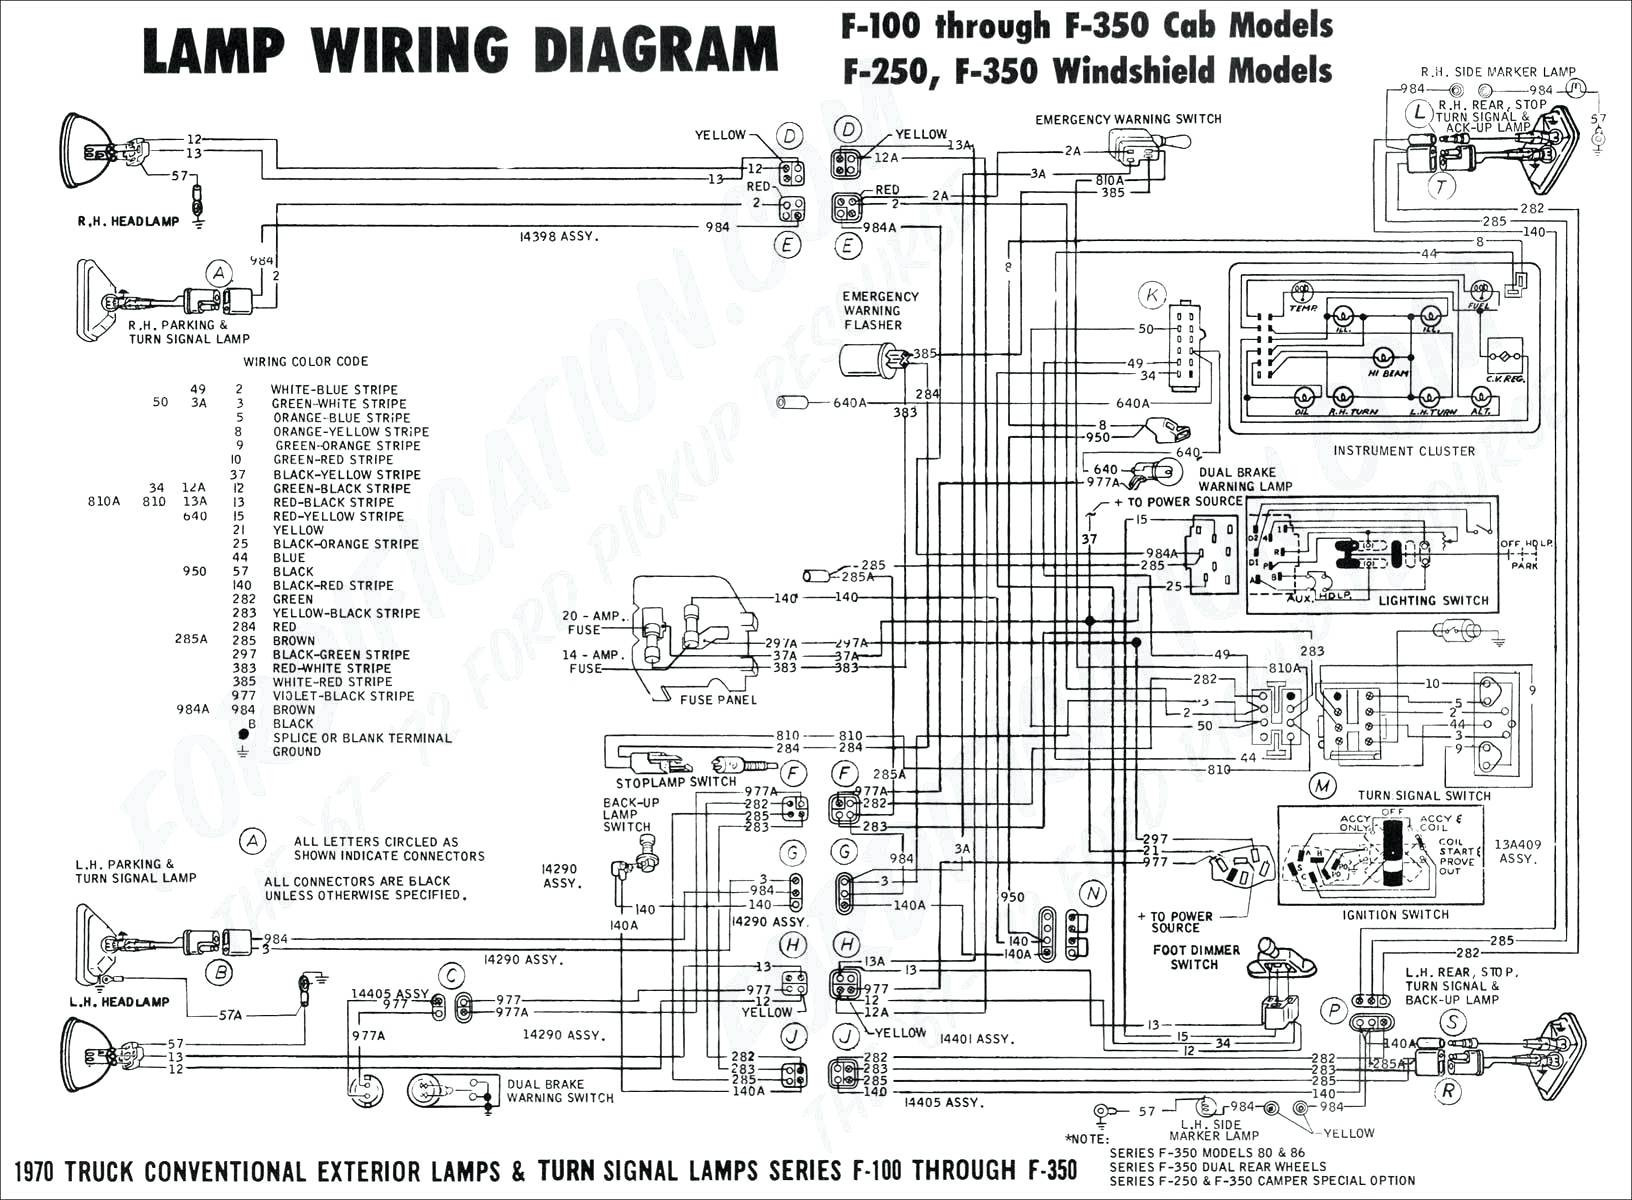 2002 ford f150 trailer wiring diagram Download-2005 Chevy Silverado Trailer Wiring Diagram Ford Resize Gmc Ideas With F250 5 8-m